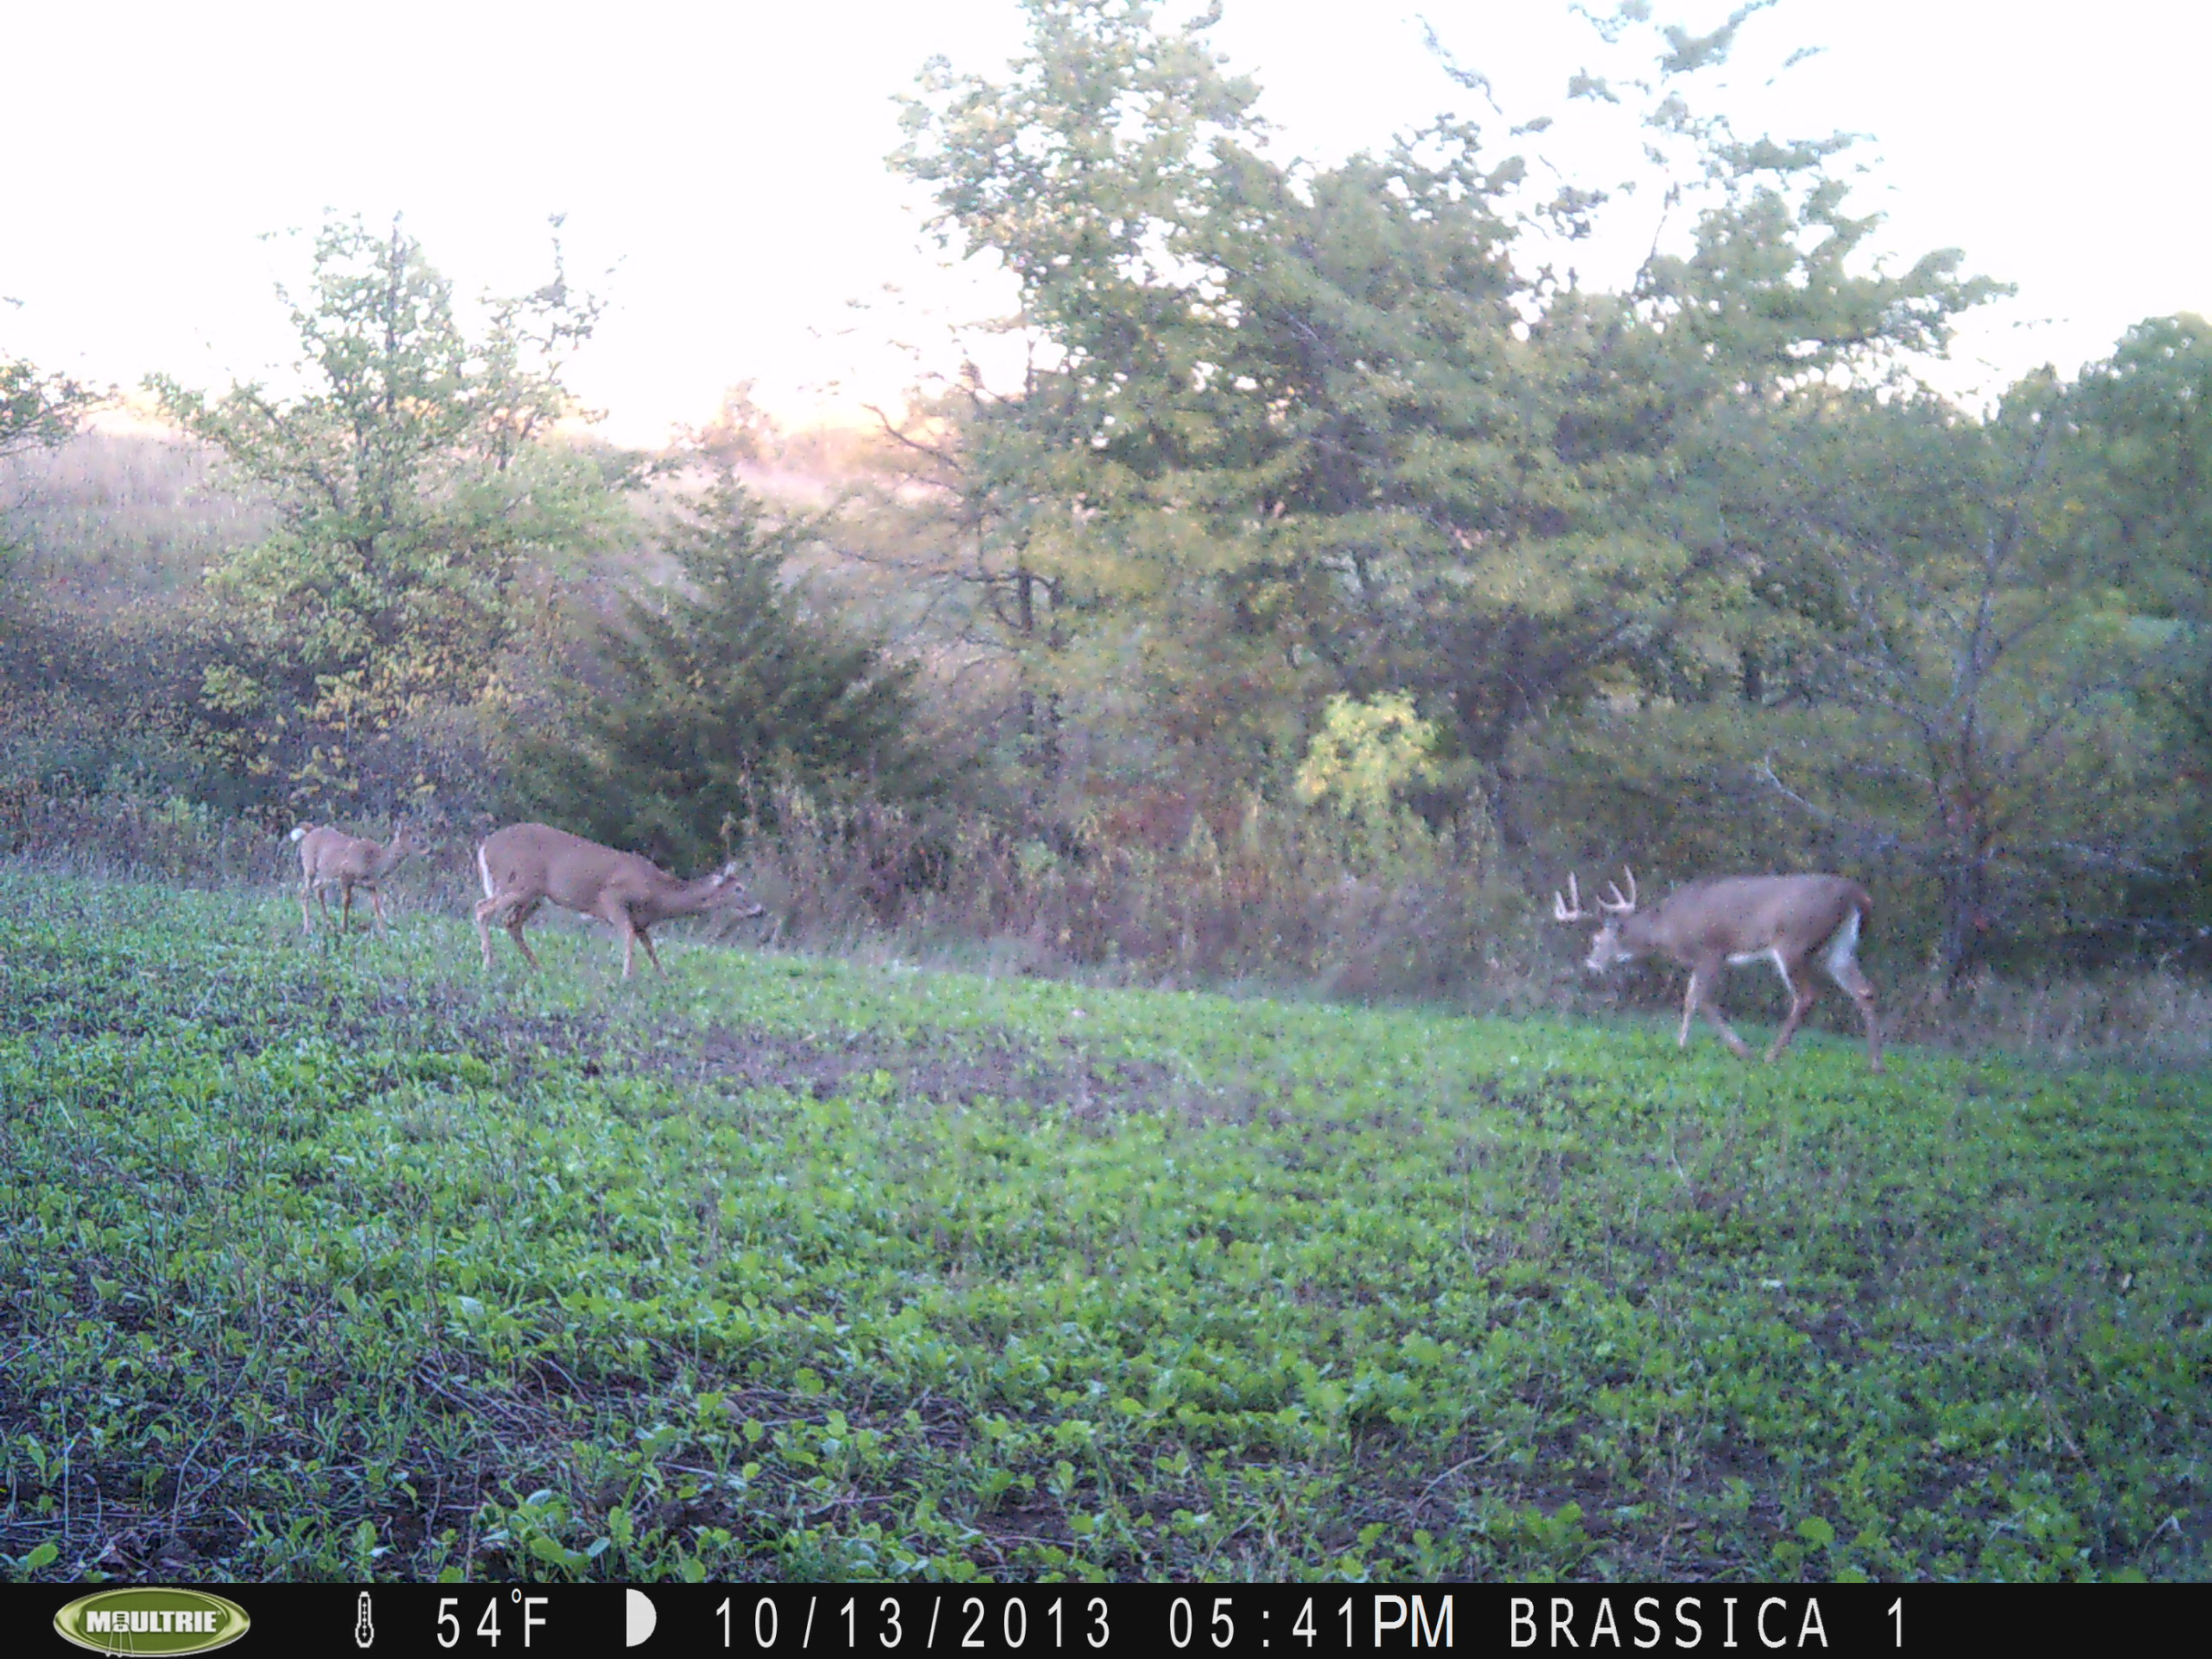 Right on schedule, we are starting to get some good bucks on our cameras some even during daylight.  Most cameras have been on food plots but we started putting them on active scrapes lately and they are getting hits.  This photo is on a brassica food plot with this good buck during daylight.